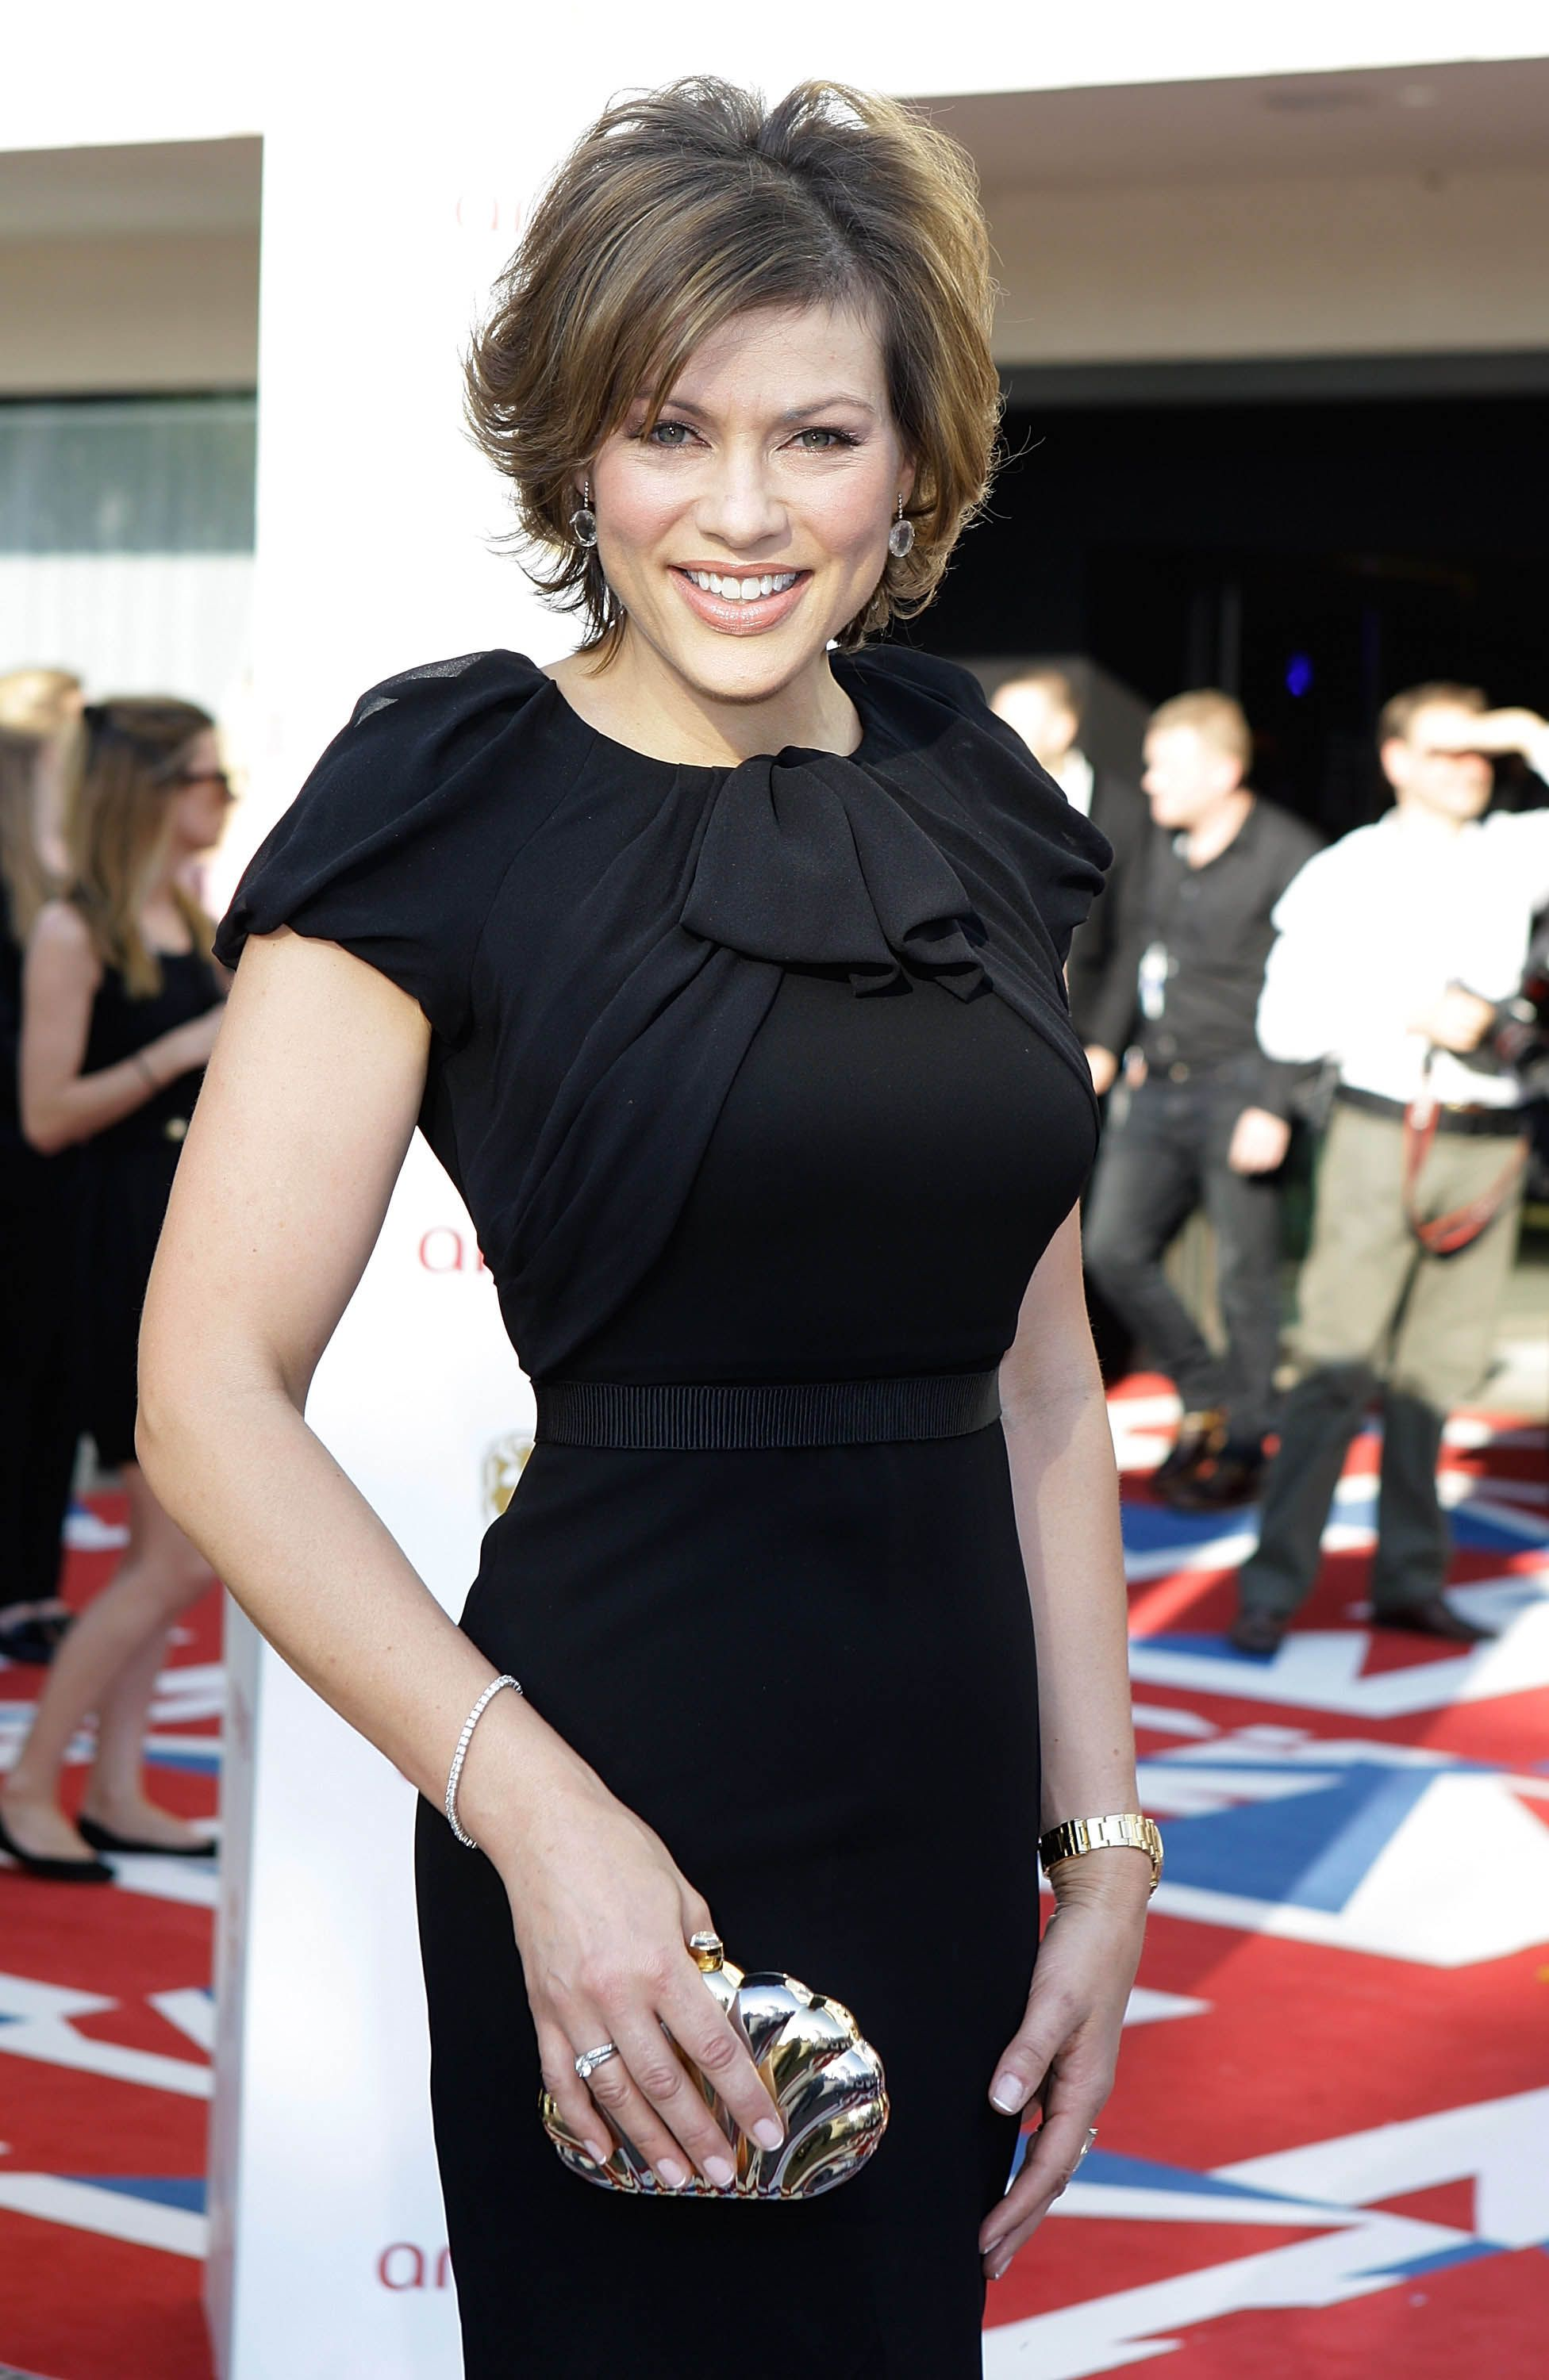 Kate Silverton | tv news | Pinterest | Bob hairstyle, Hair ...